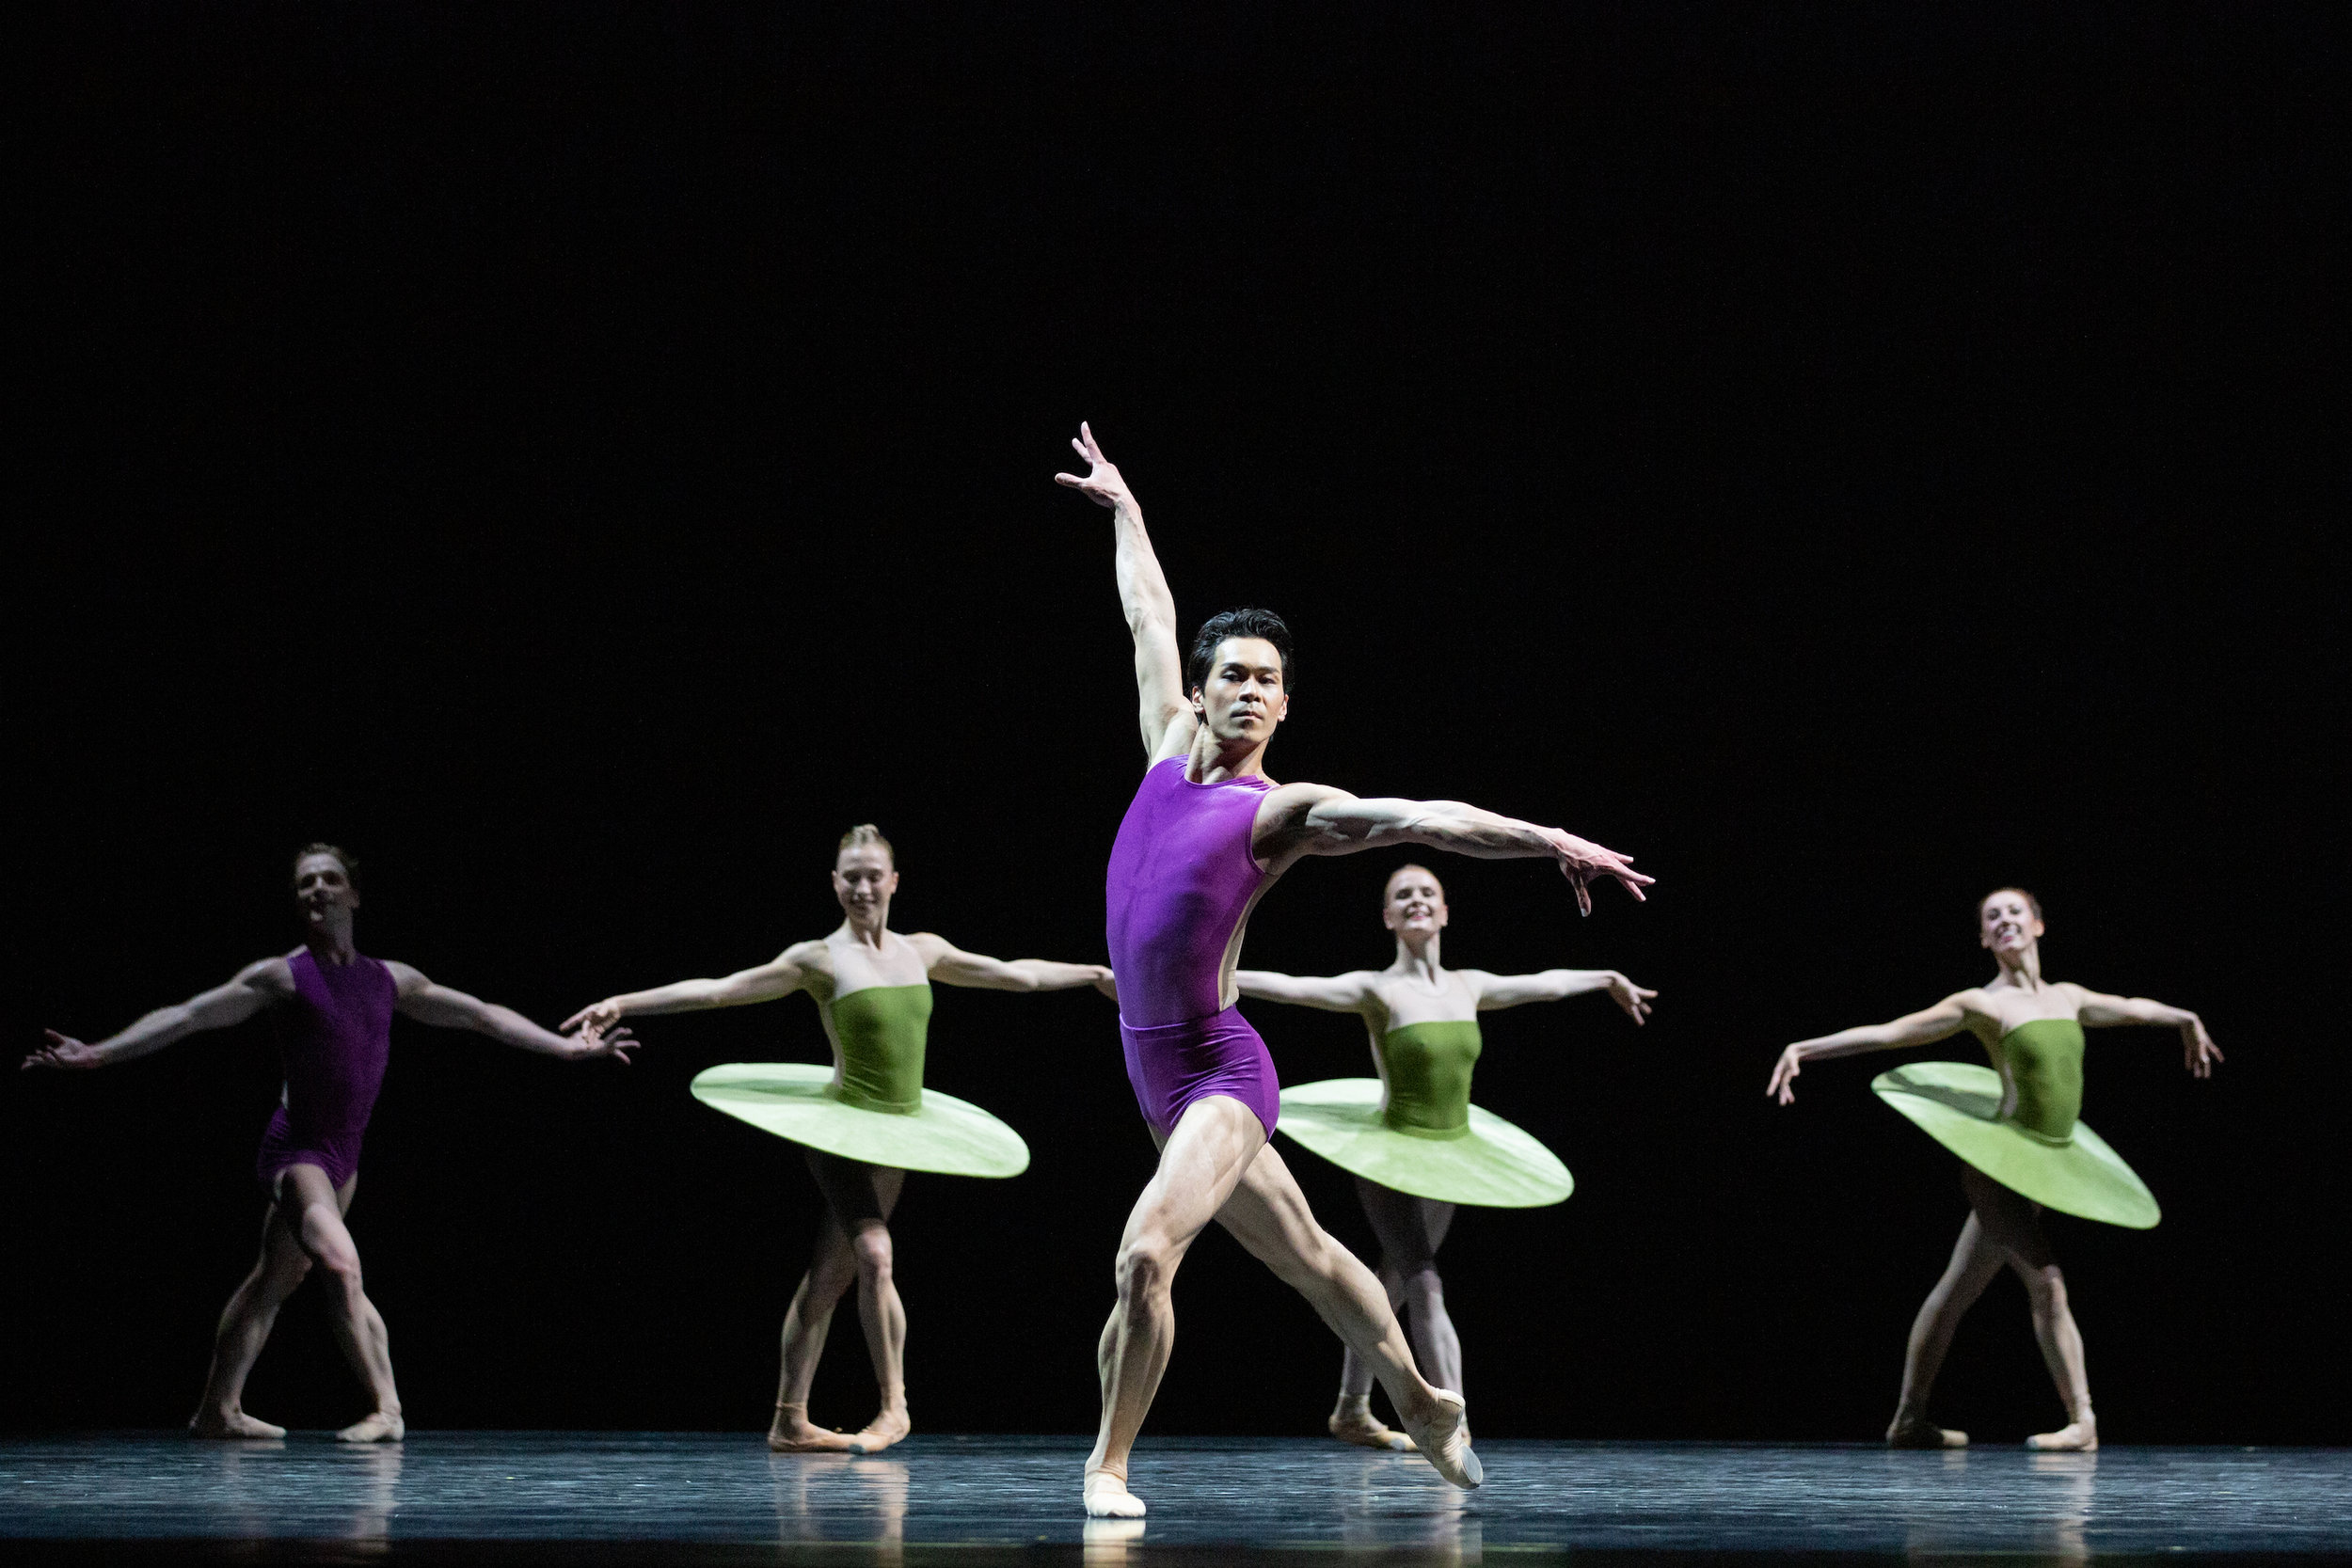 The National Ballet of Canada – The Vertiginous Thrill of Exactitude by William Forsythe.